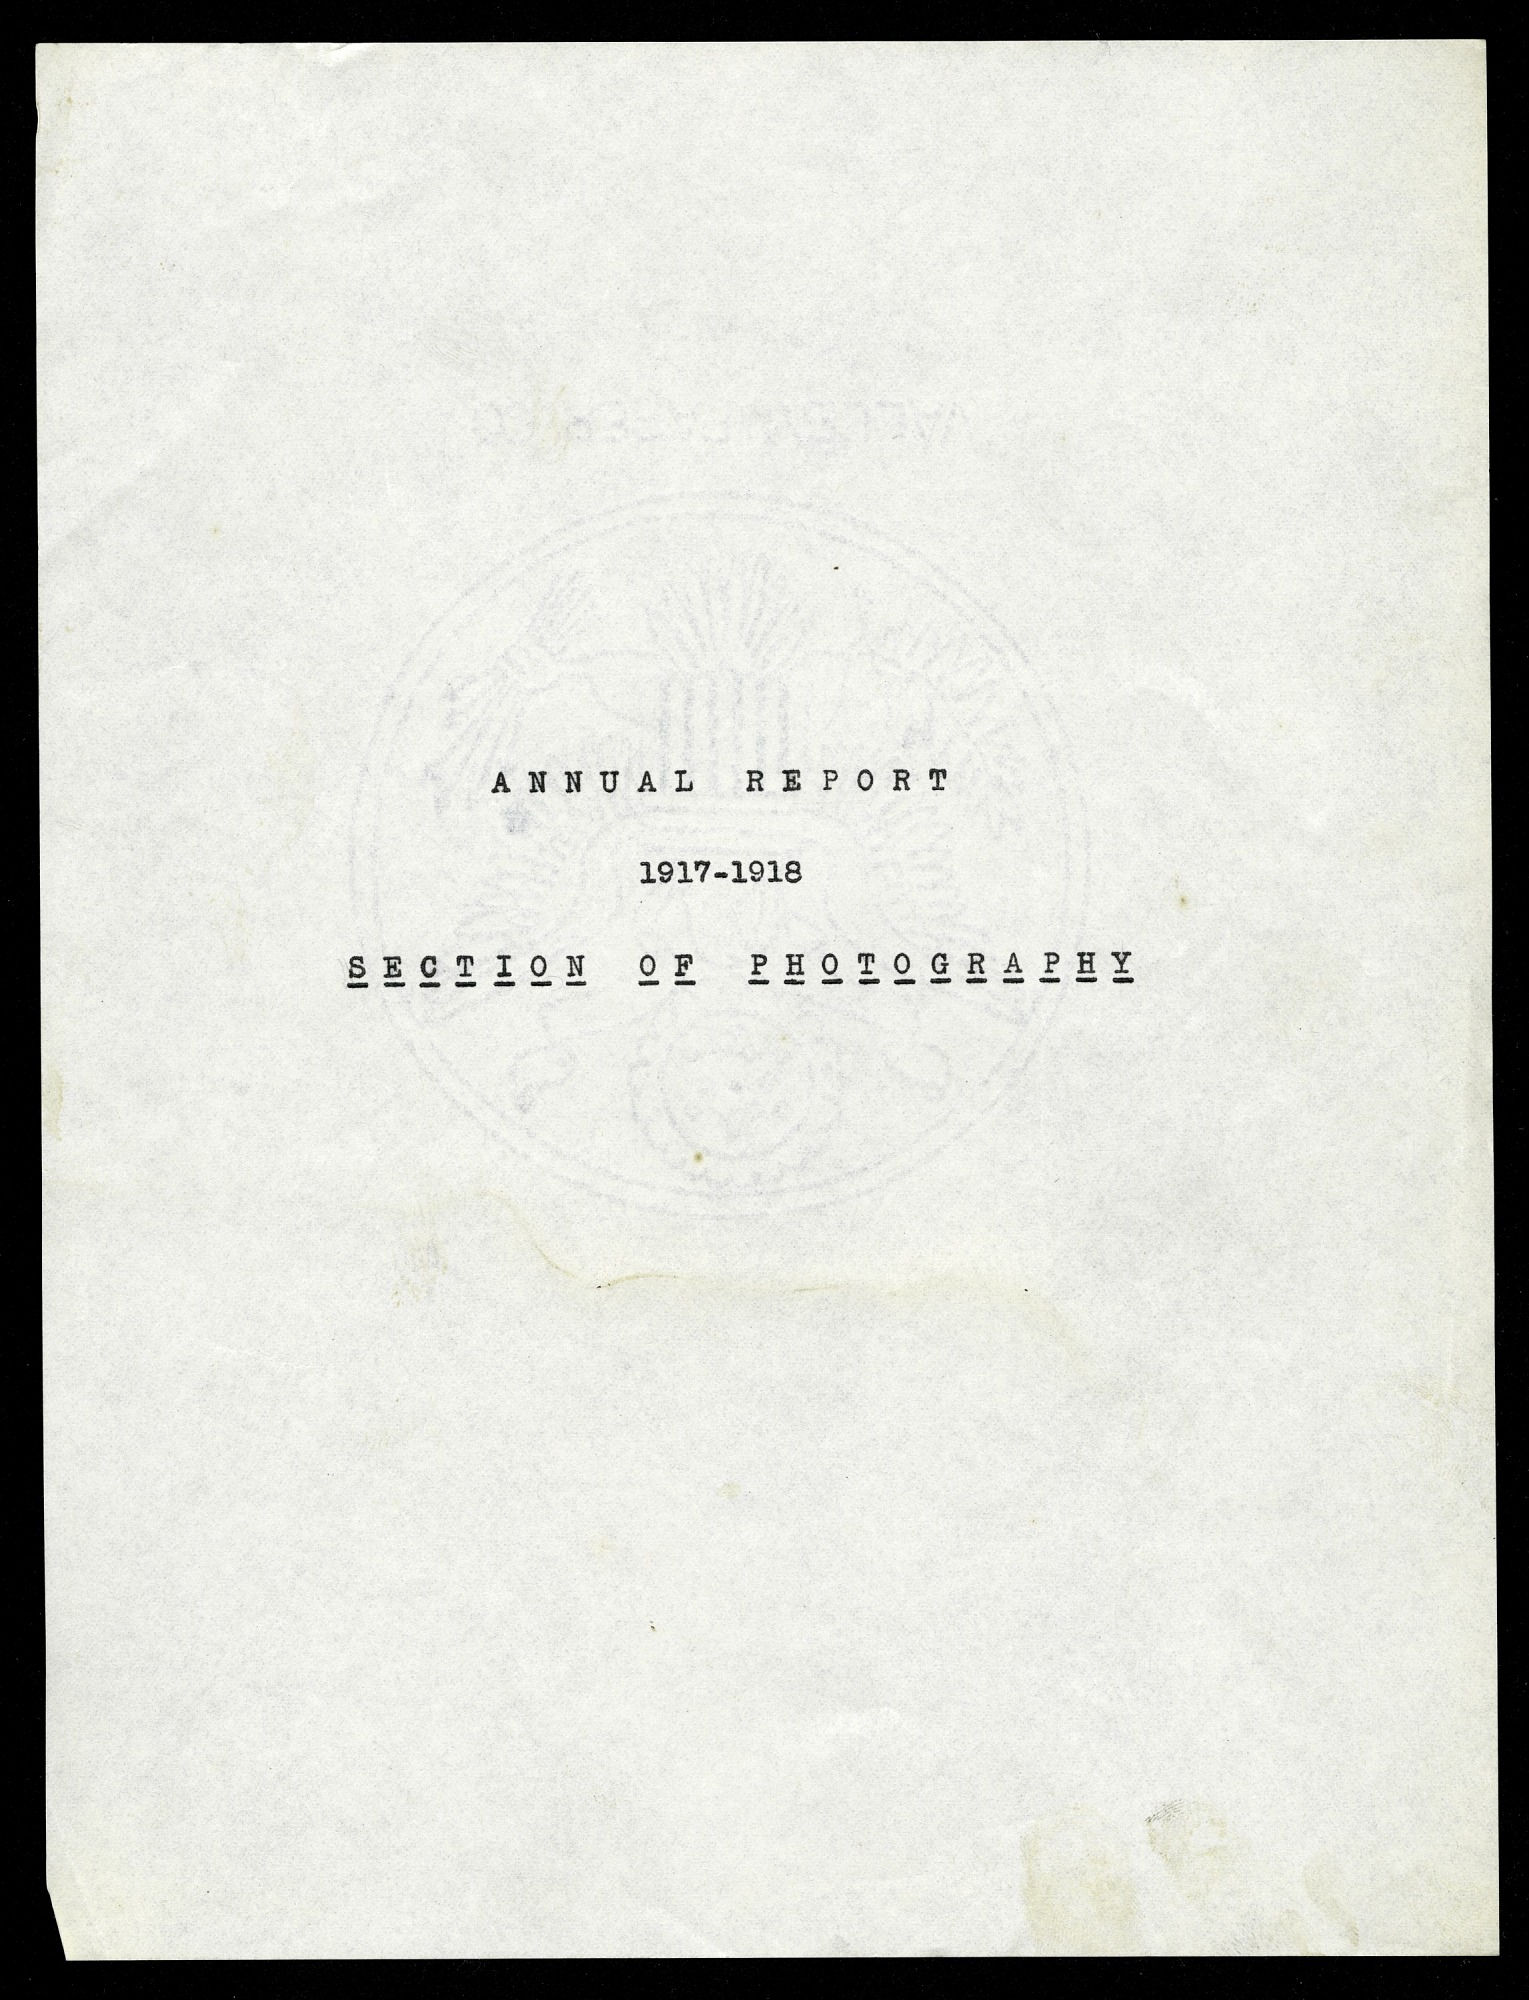 1918 Annual Report, Section of Photography